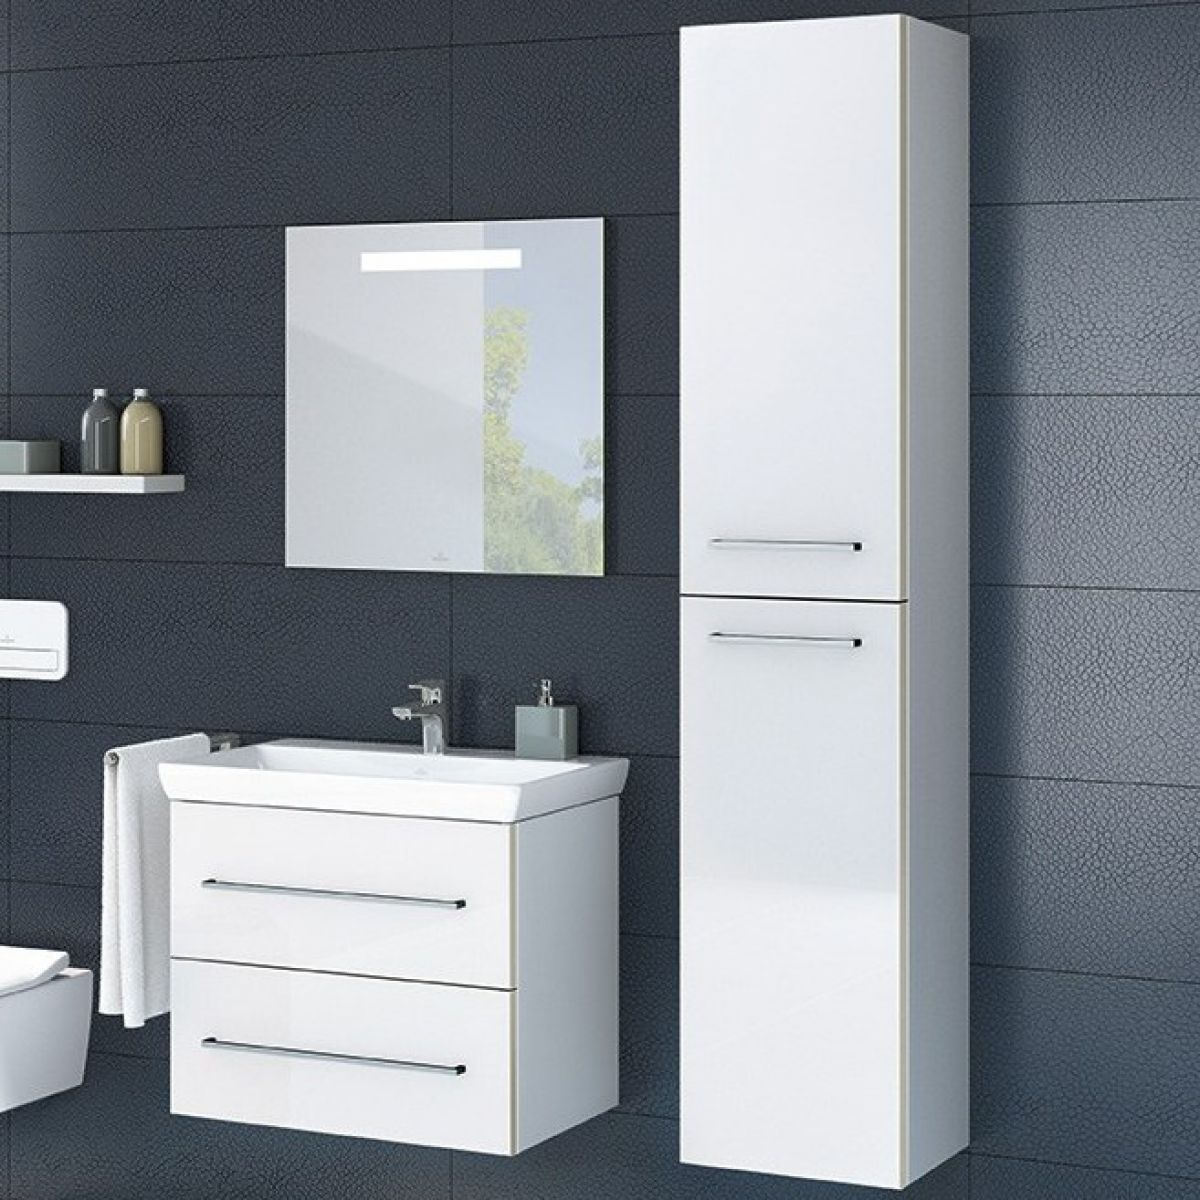 Villeroy & Boch Avento Tall Cabinet | Bathrooms Direct Yorkshire